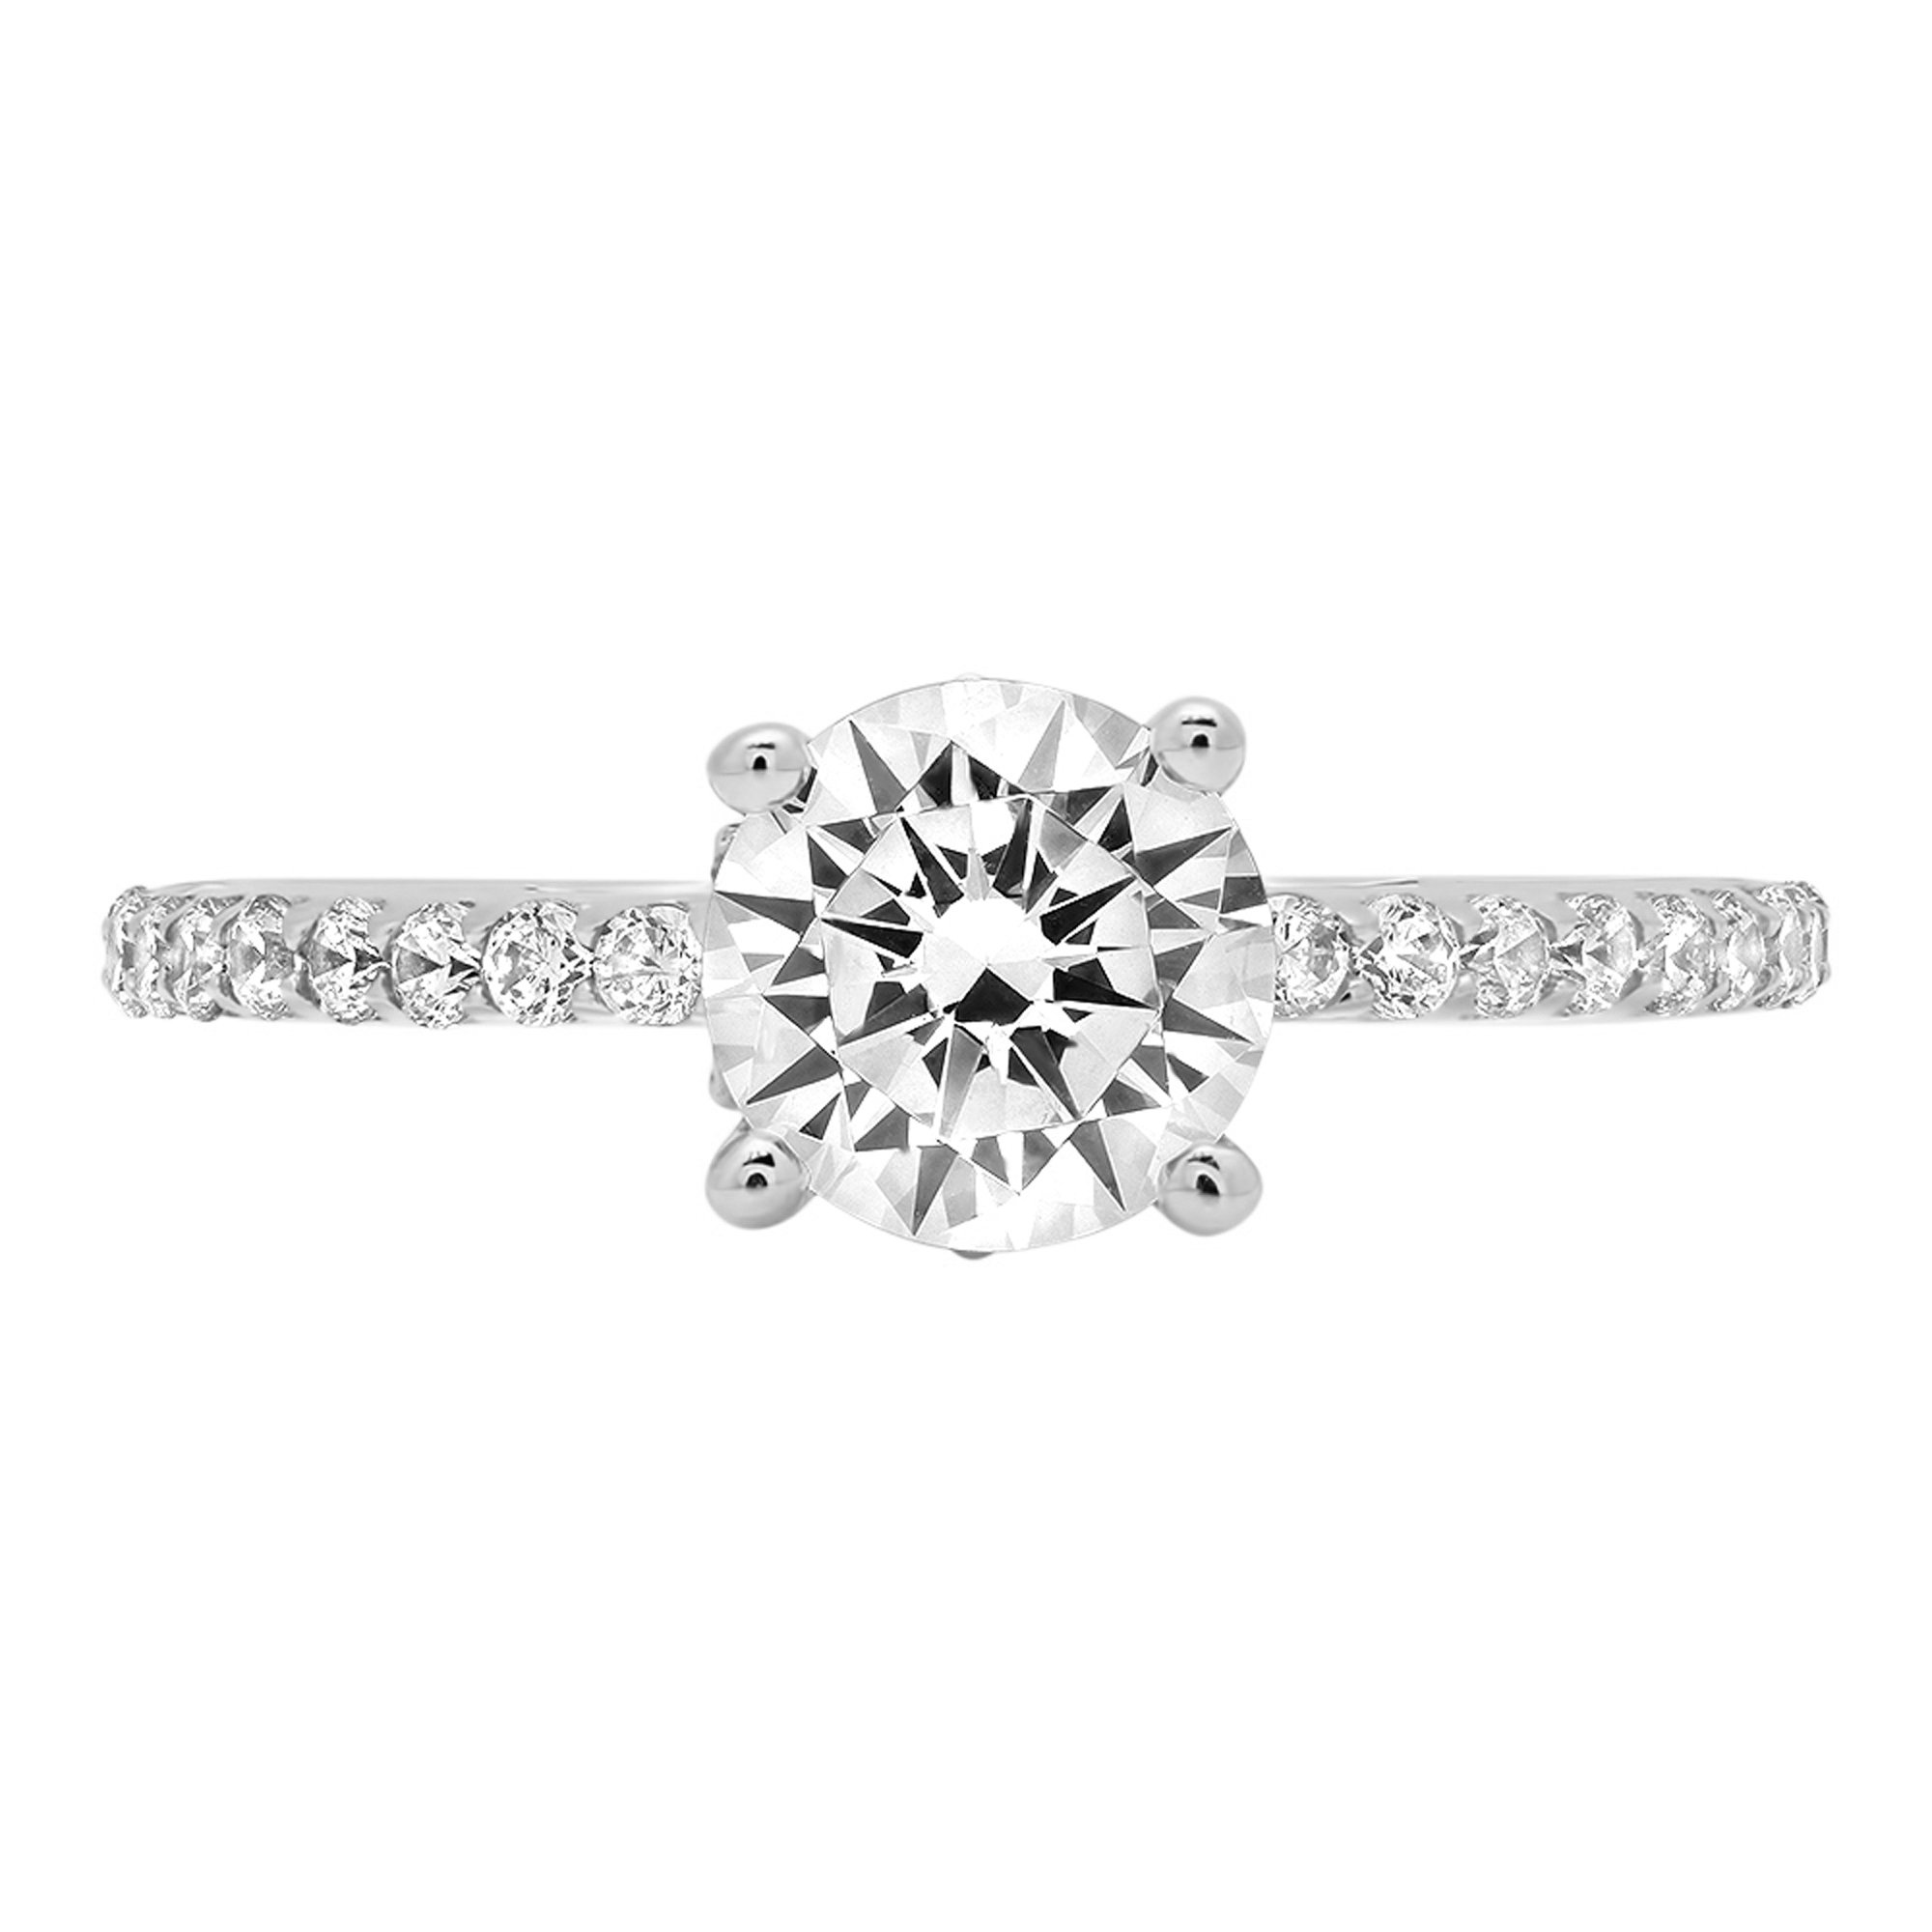 1.64ct Brilliant Round Cut Designer Simulated Diamond Accent Solitaire Statement Ring for Women Solid 14k White Gold, 5